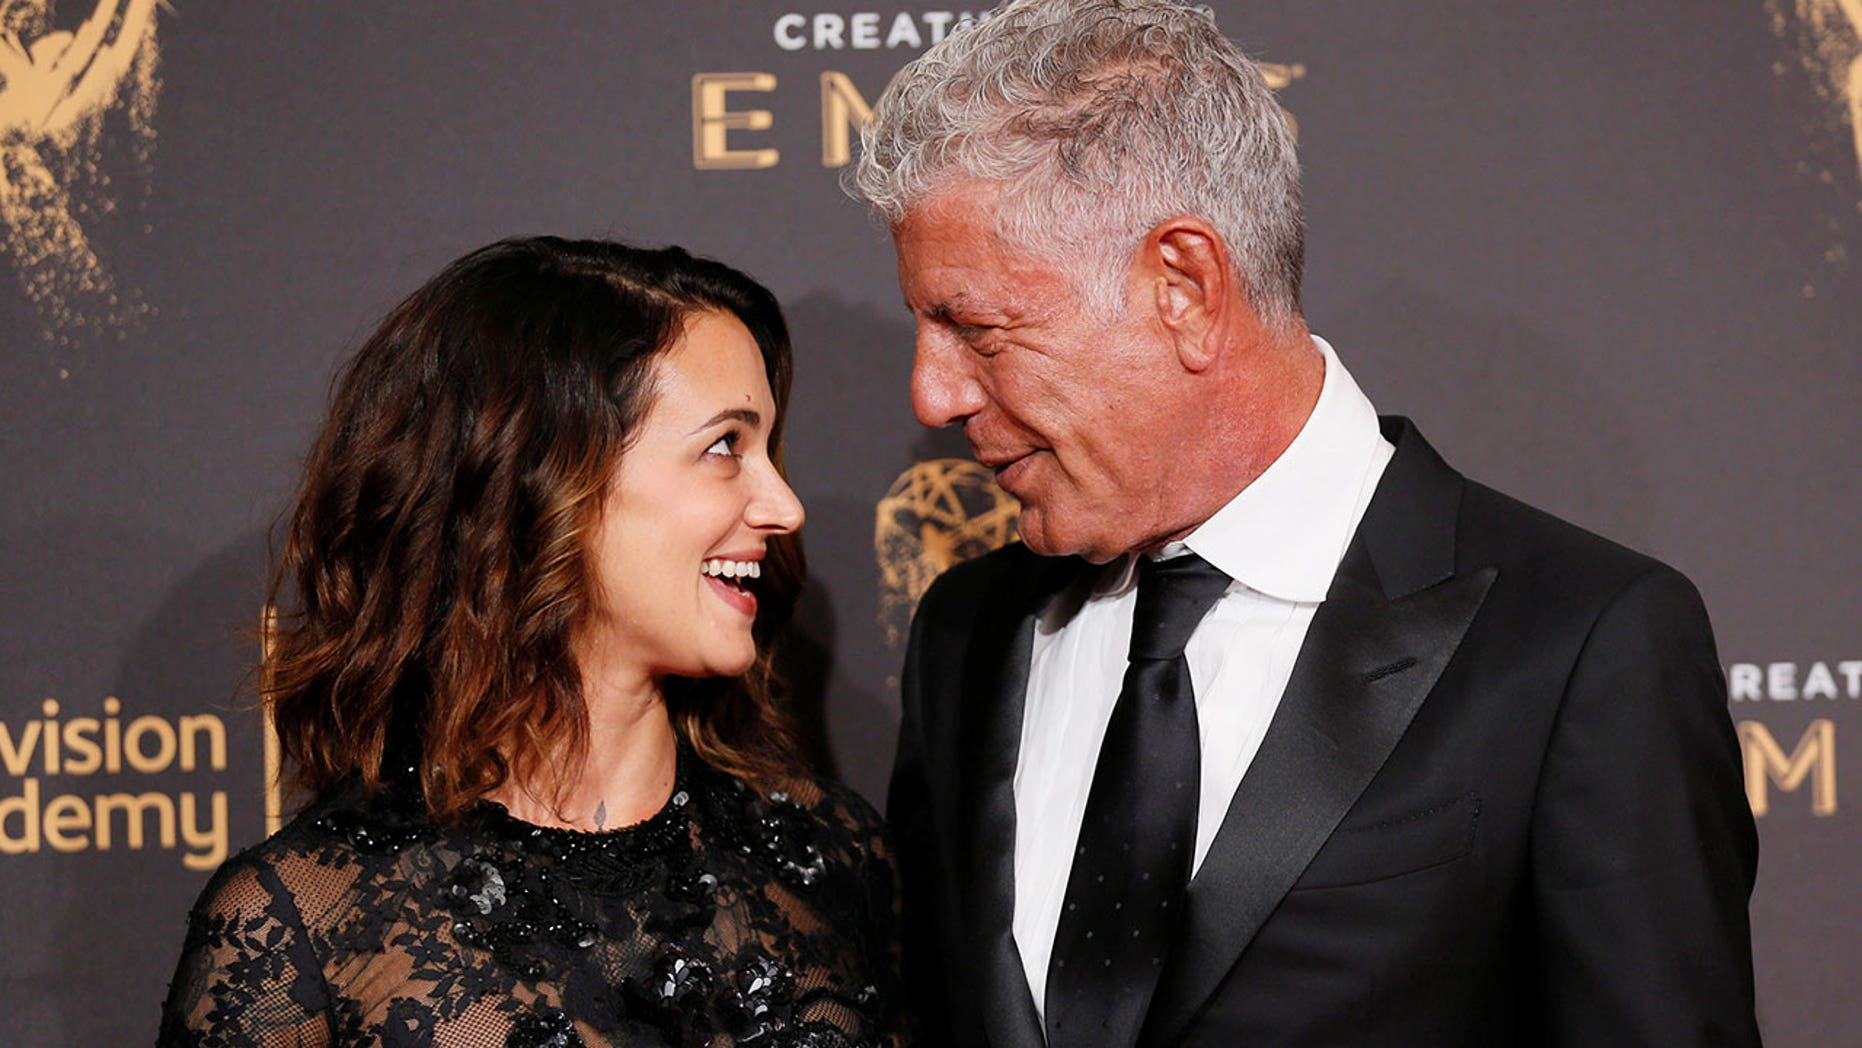 Anthony Bourdain (right) has defended his girlfriend, Asia Argento, over her claims that Harvey Weinstein sexually assaulted her.